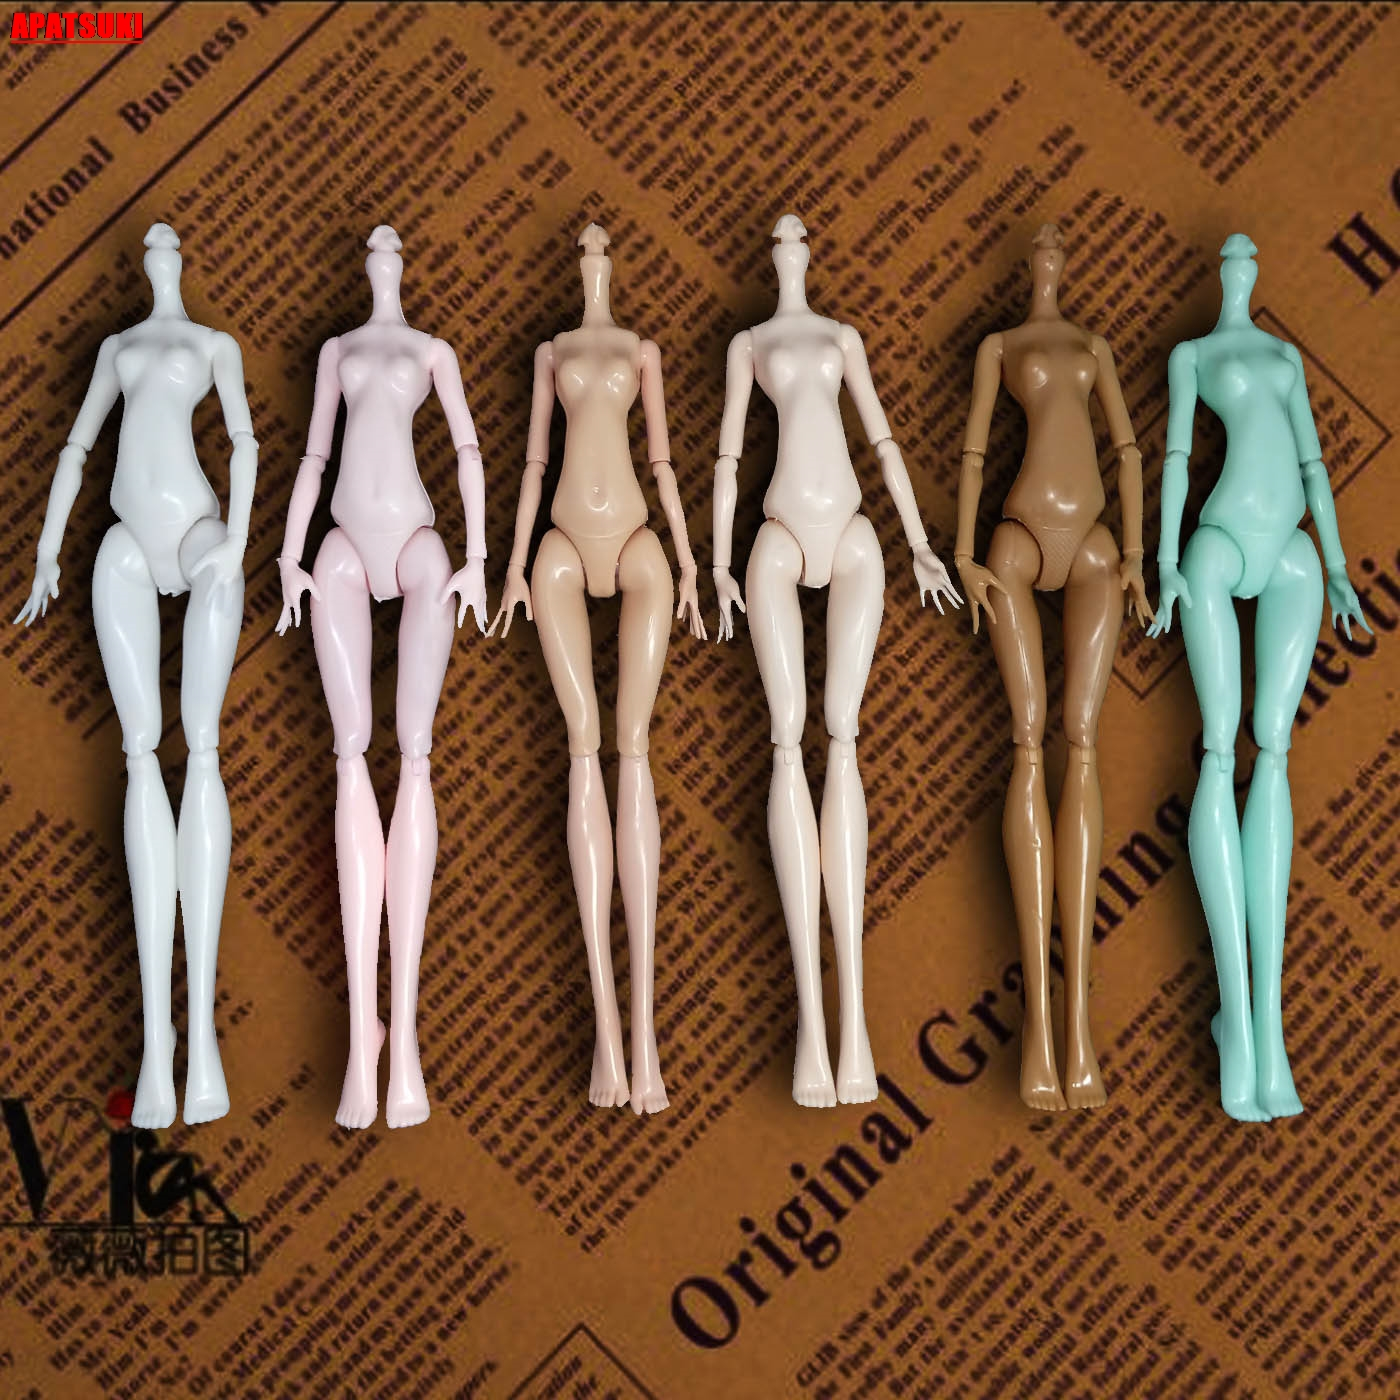 Imitation Demon Monster Doll Naked Body Without Head For Monster High Dolls DIY Fairytales Rotatable Joints Doll Accessories Kid